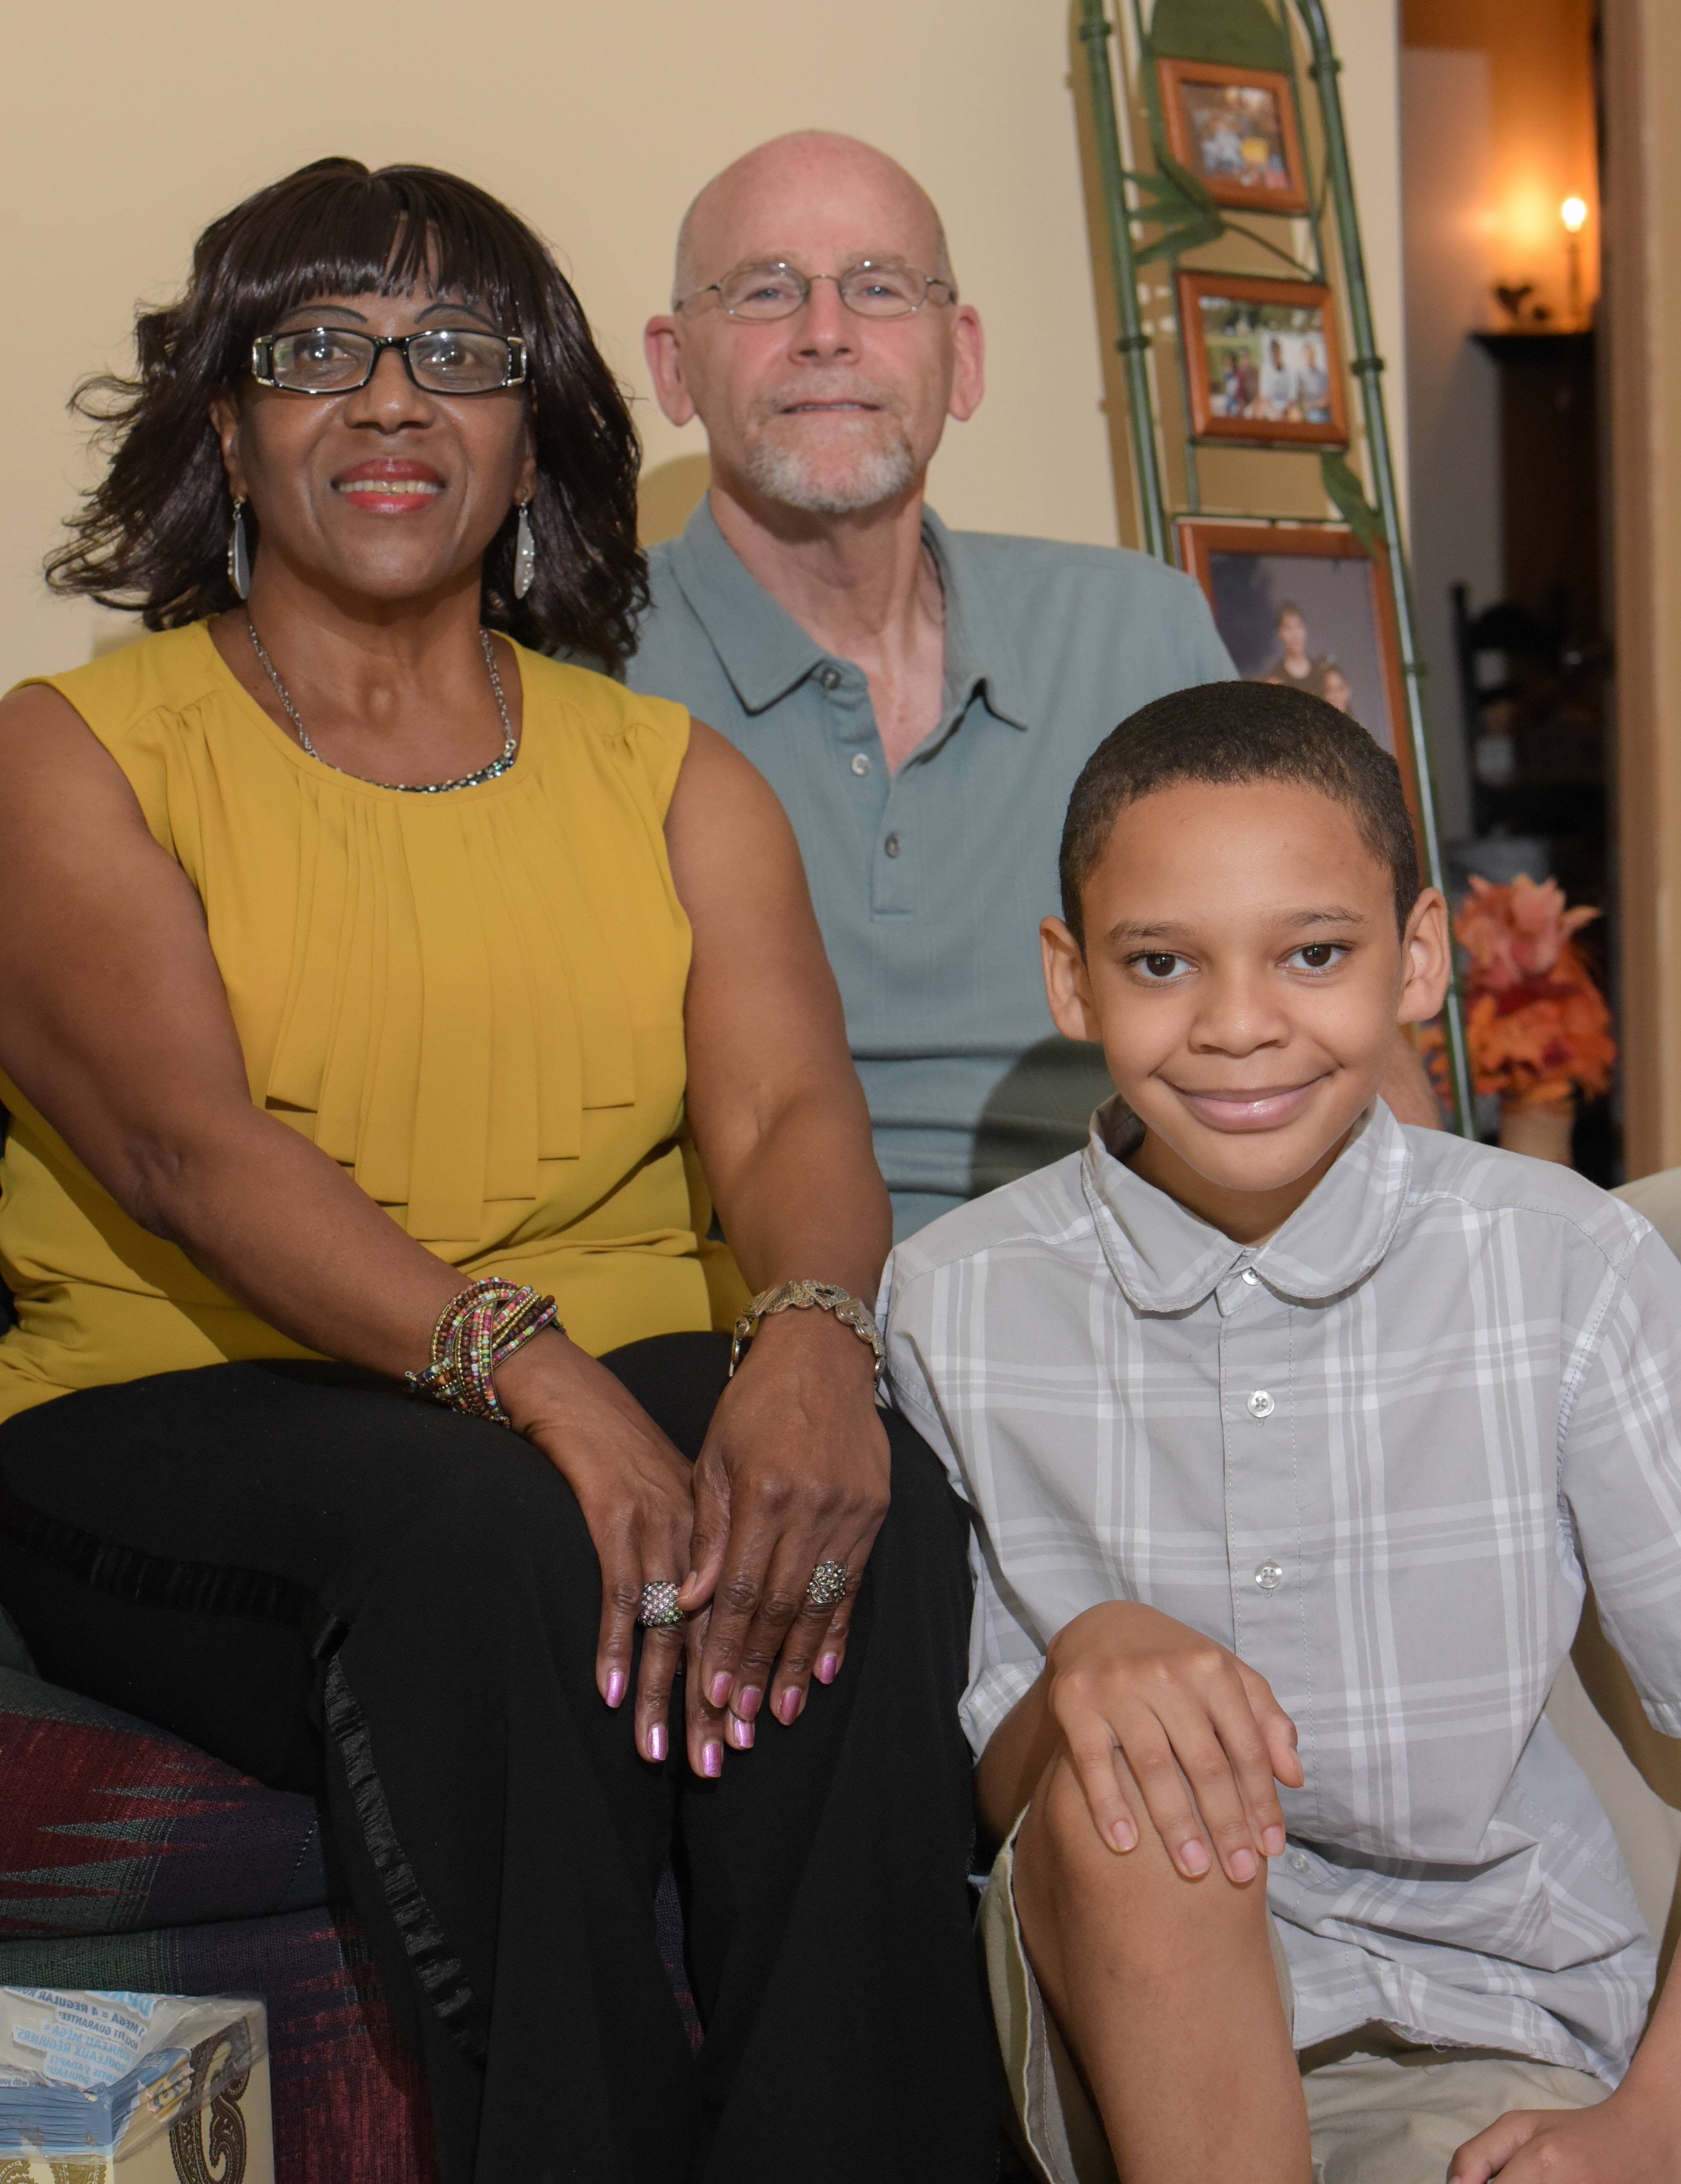 Neil Samuels of Naperville served as a mentor to Jearline Gatlin of Naperville and helped her learn skills to parent her 11-year-old grandson, Jalen.